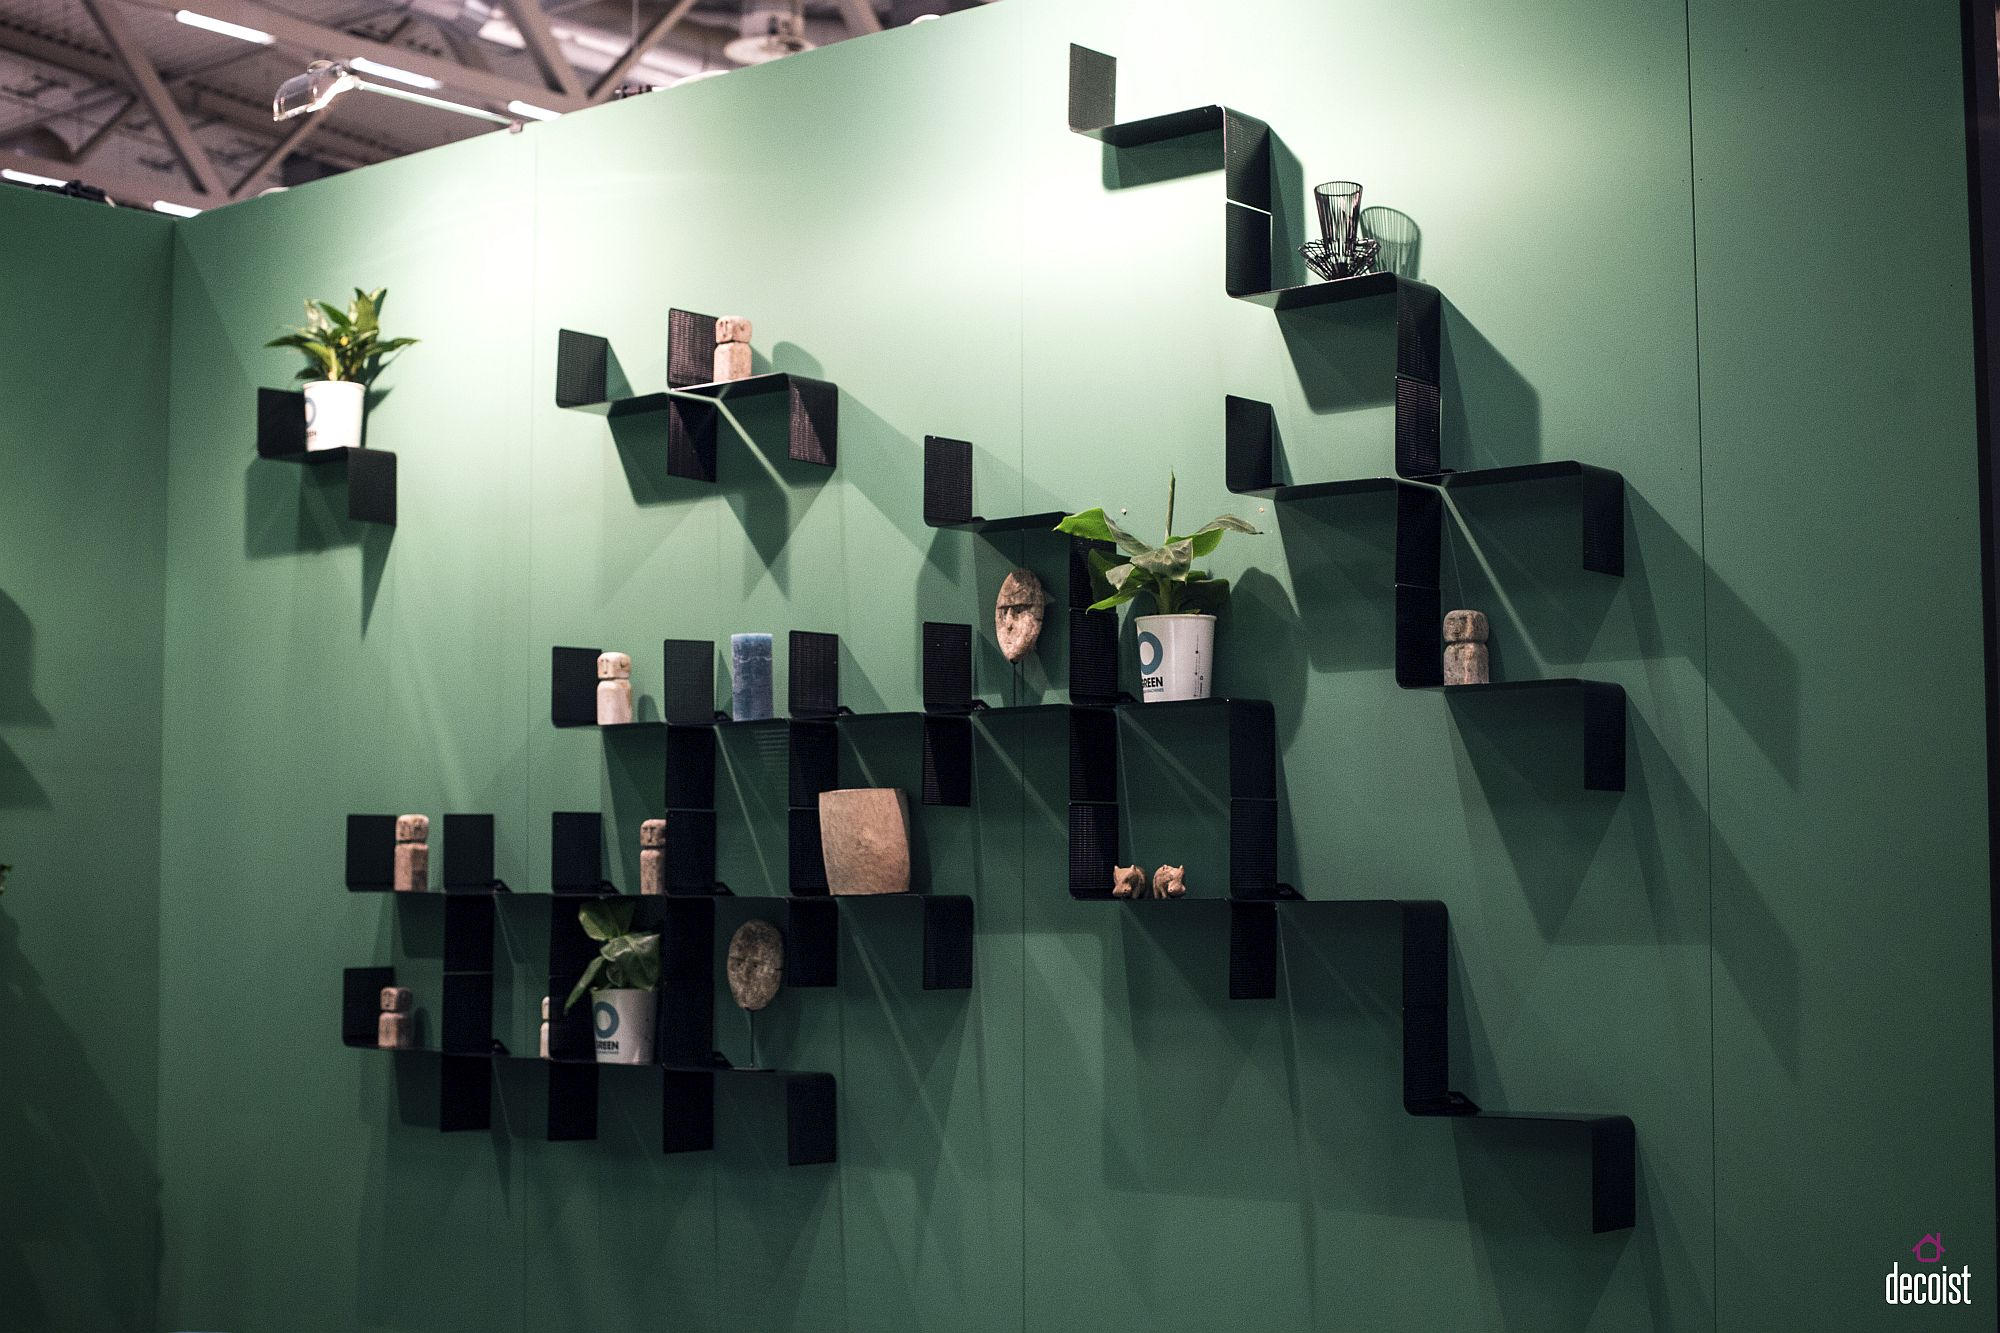 Repeating these snazzy shelves creates a great accent wall that also offers display space